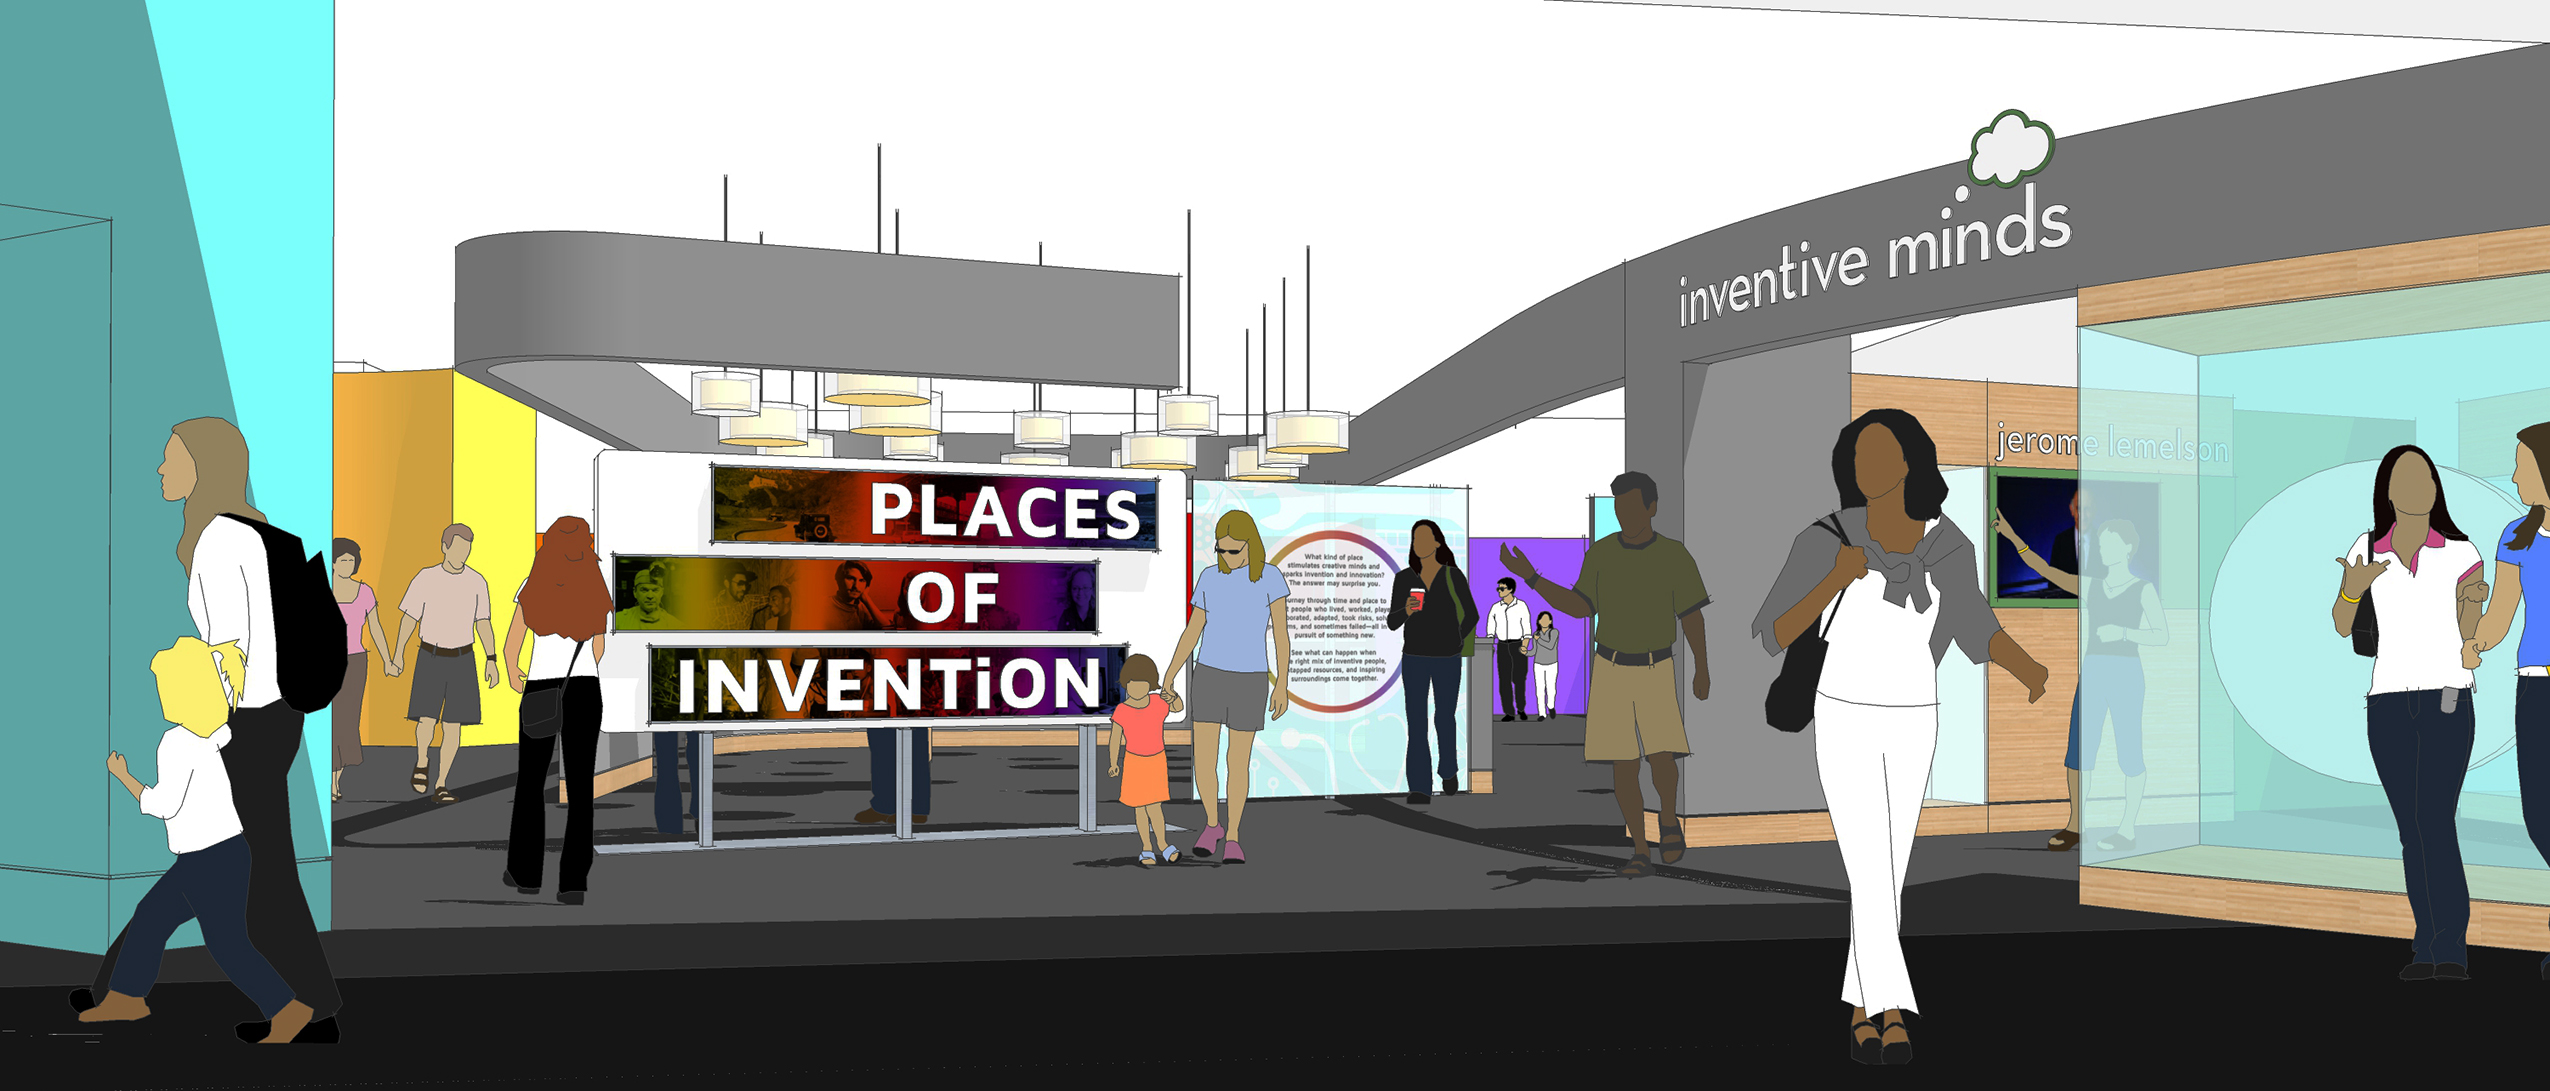 Rendering of the Lemelson Hall of Invention entry